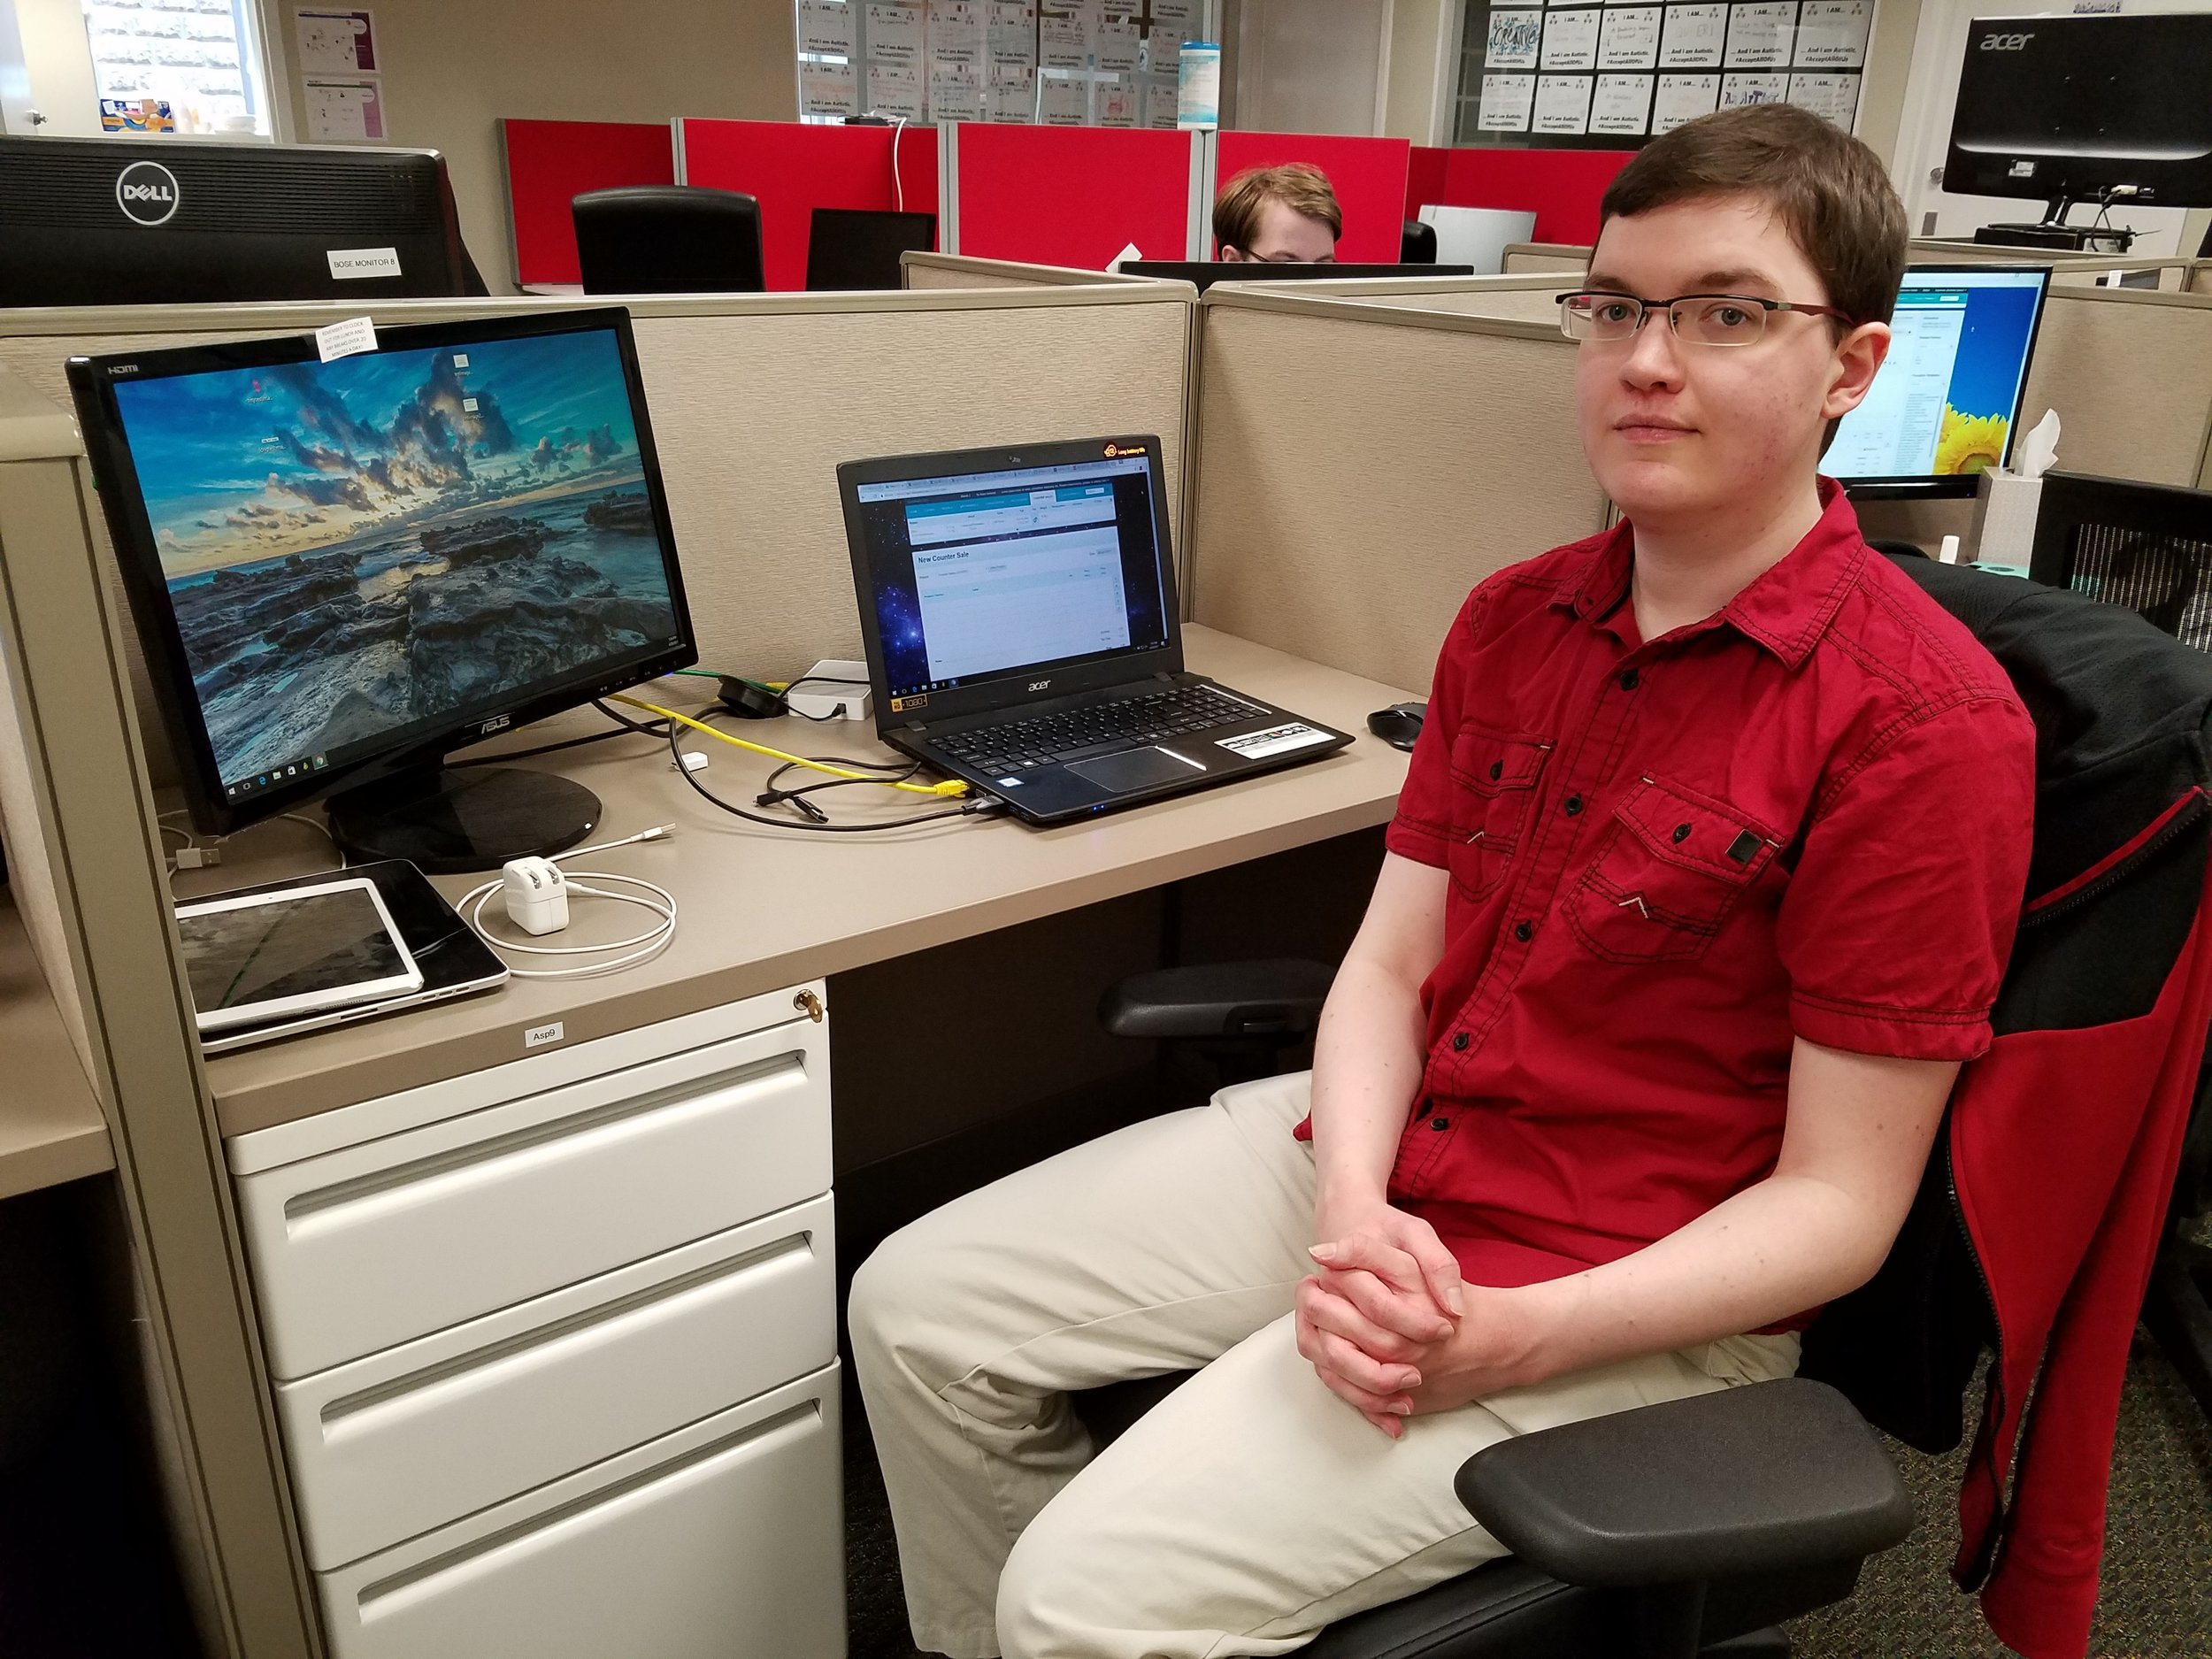 """""""For a while, I almost felt this job was too good to be real. What are the odds that a company that hires autistic individuals, and does work I like, and is close to my house, exists?""""  -Ian, 30 years old, QA Lead since 2016"""